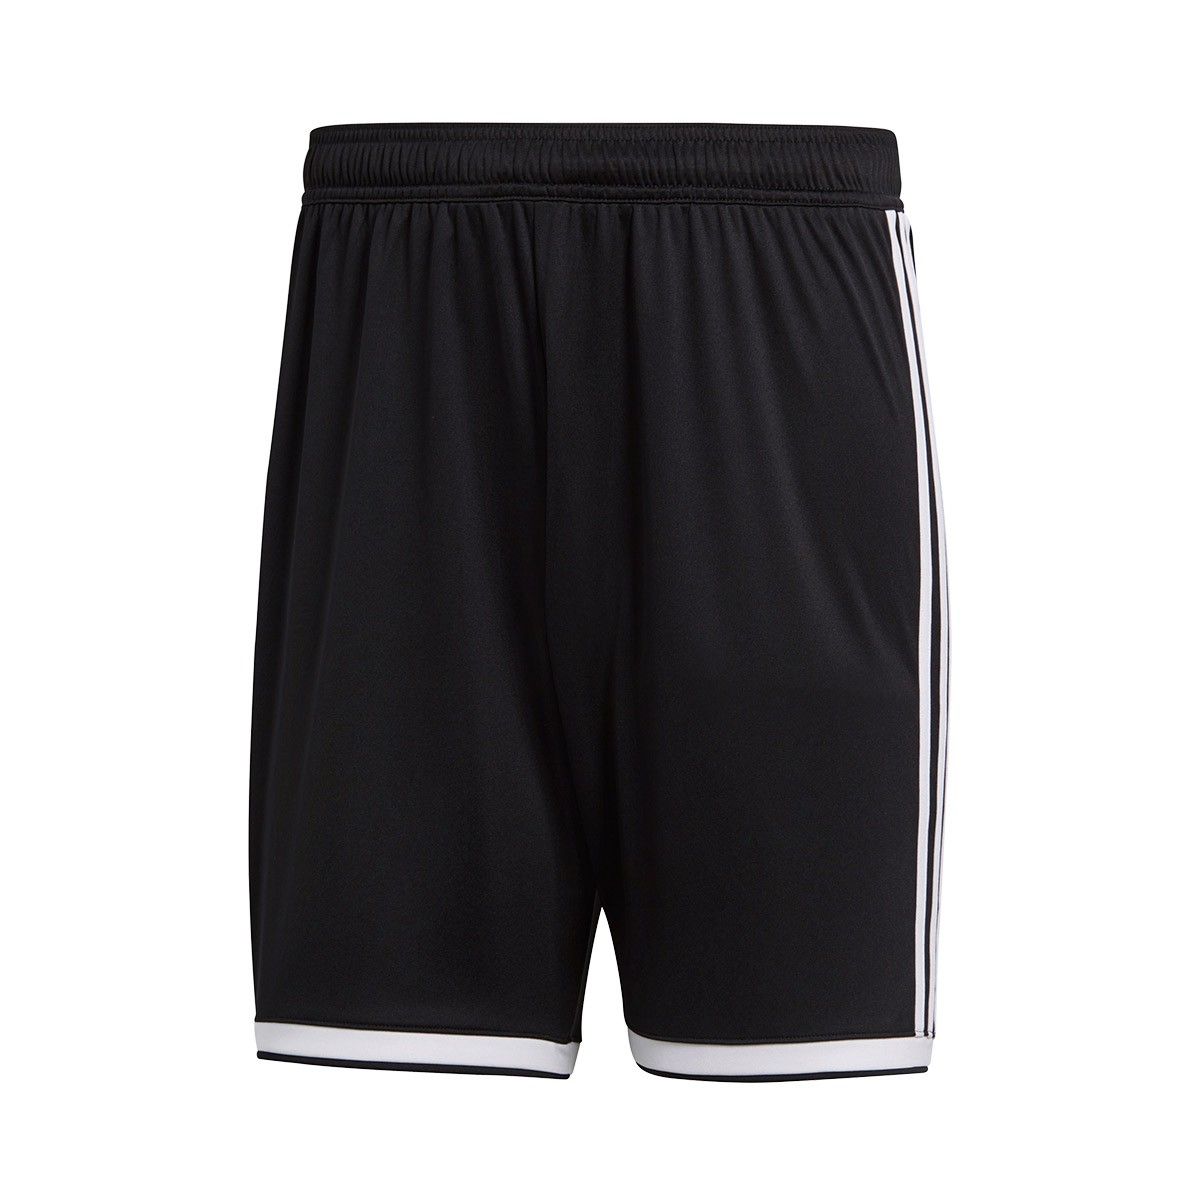 3a0077c0b3 Shorts adidas Regista 18 Black-White - Tienda de fútbol Fútbol Emotion